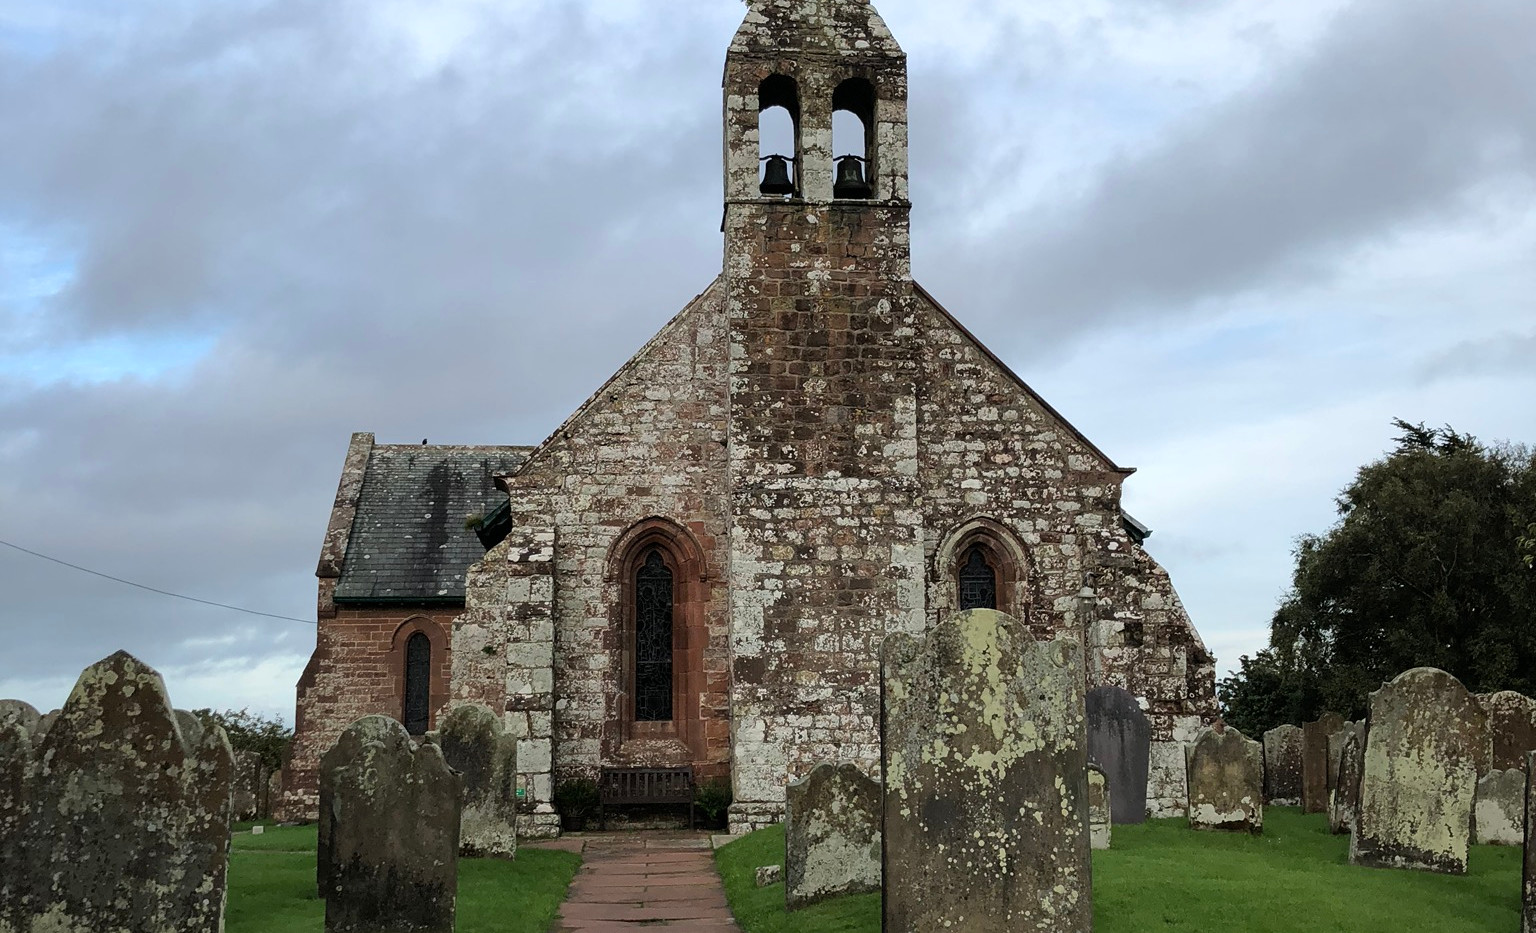 Bowness on Solway Firth Church (made from Hadrian's Wall)